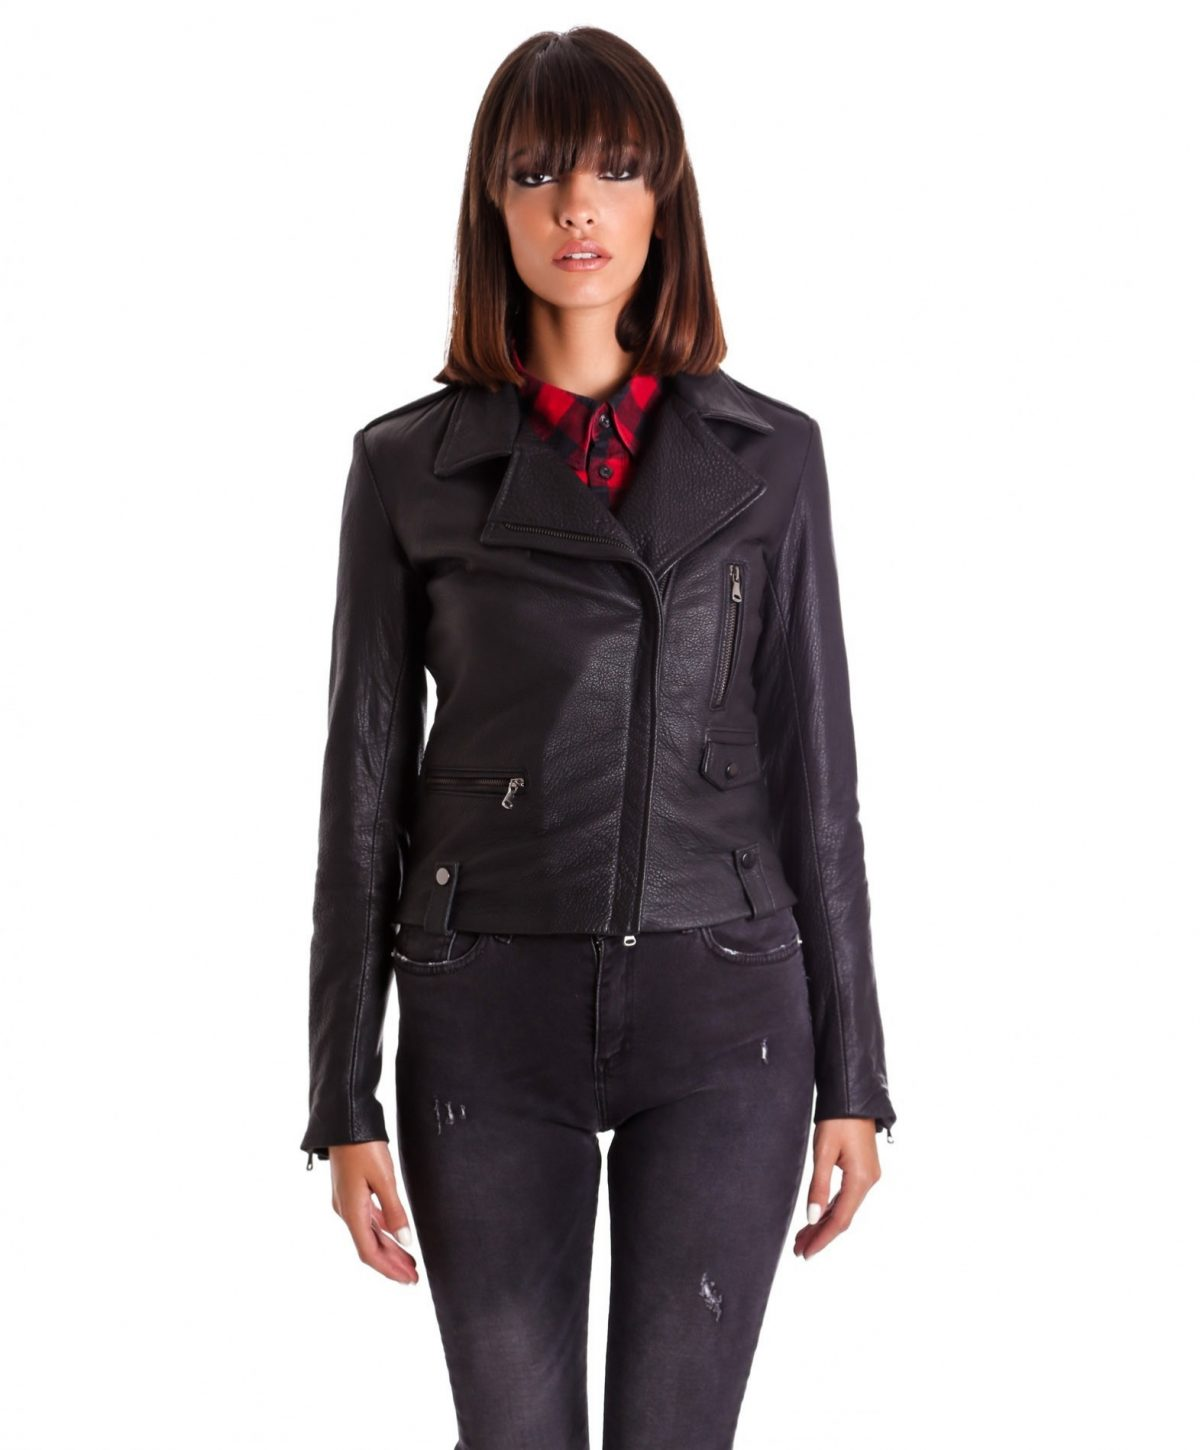 Black Color Lamb Leather Biker Jacket Smooth Effect